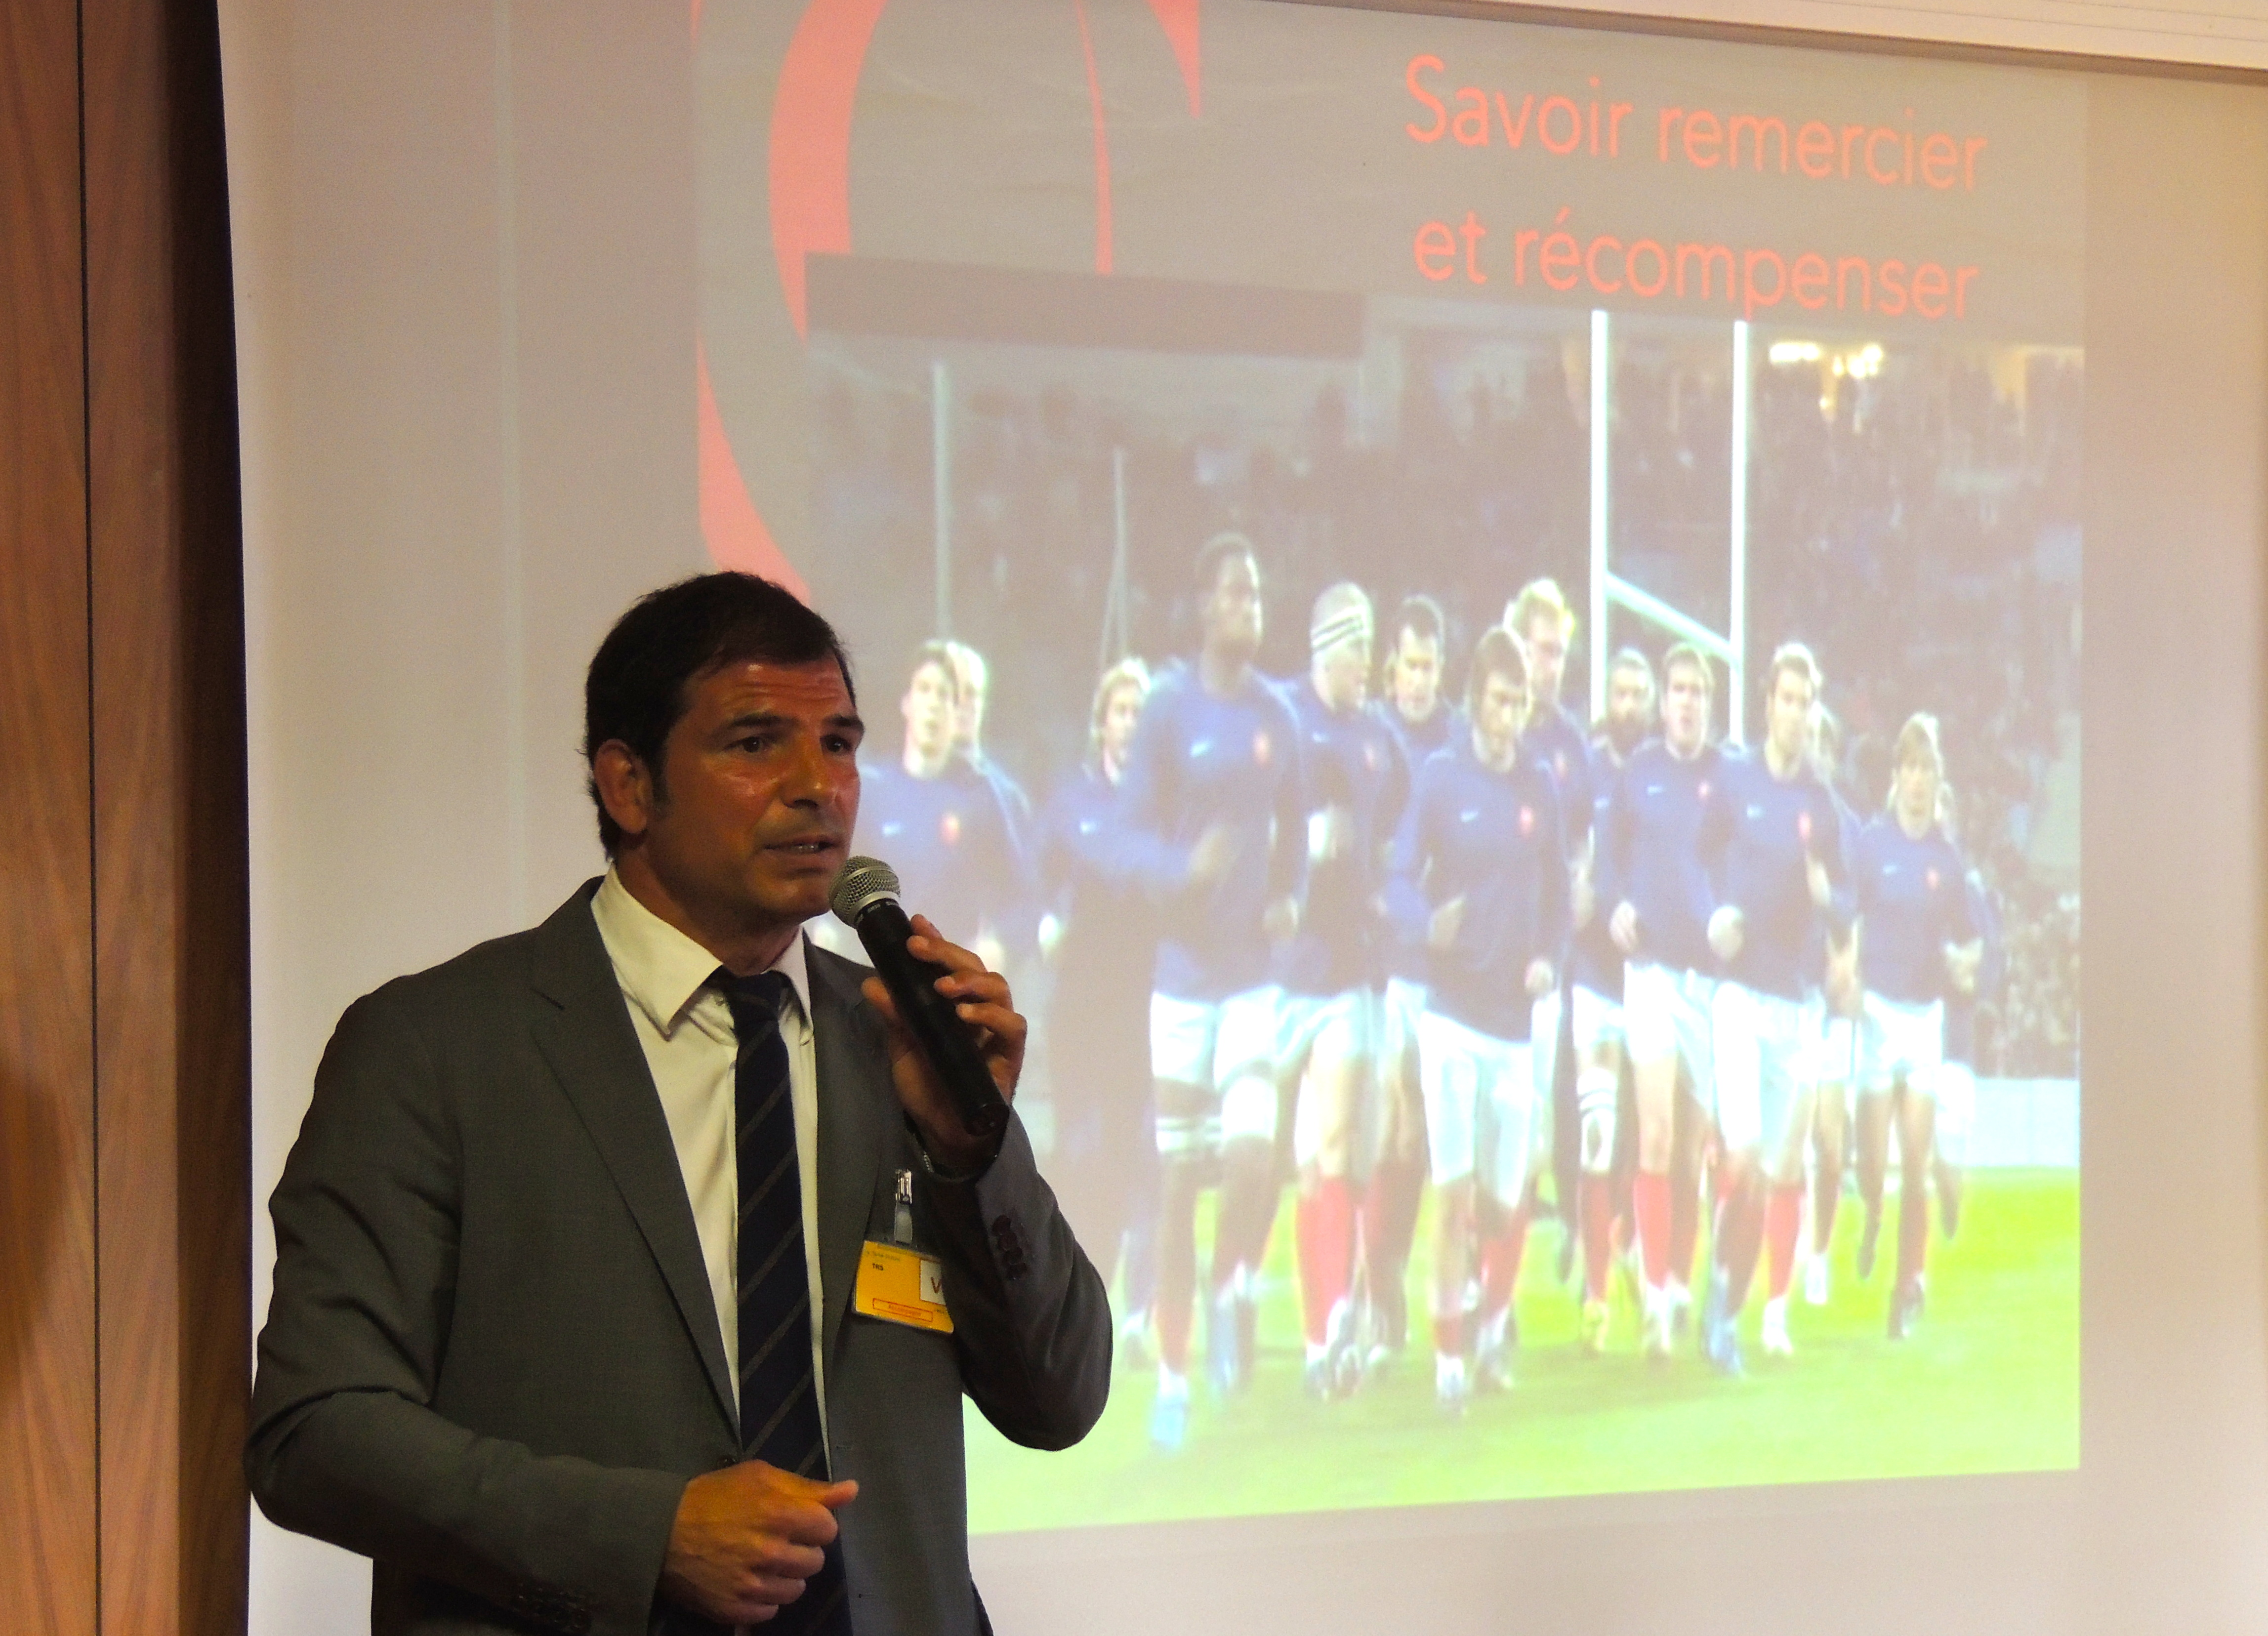 conference-sport-business-pays-basque-biarritz-marc-lievremont-le-cercle-evenements-11